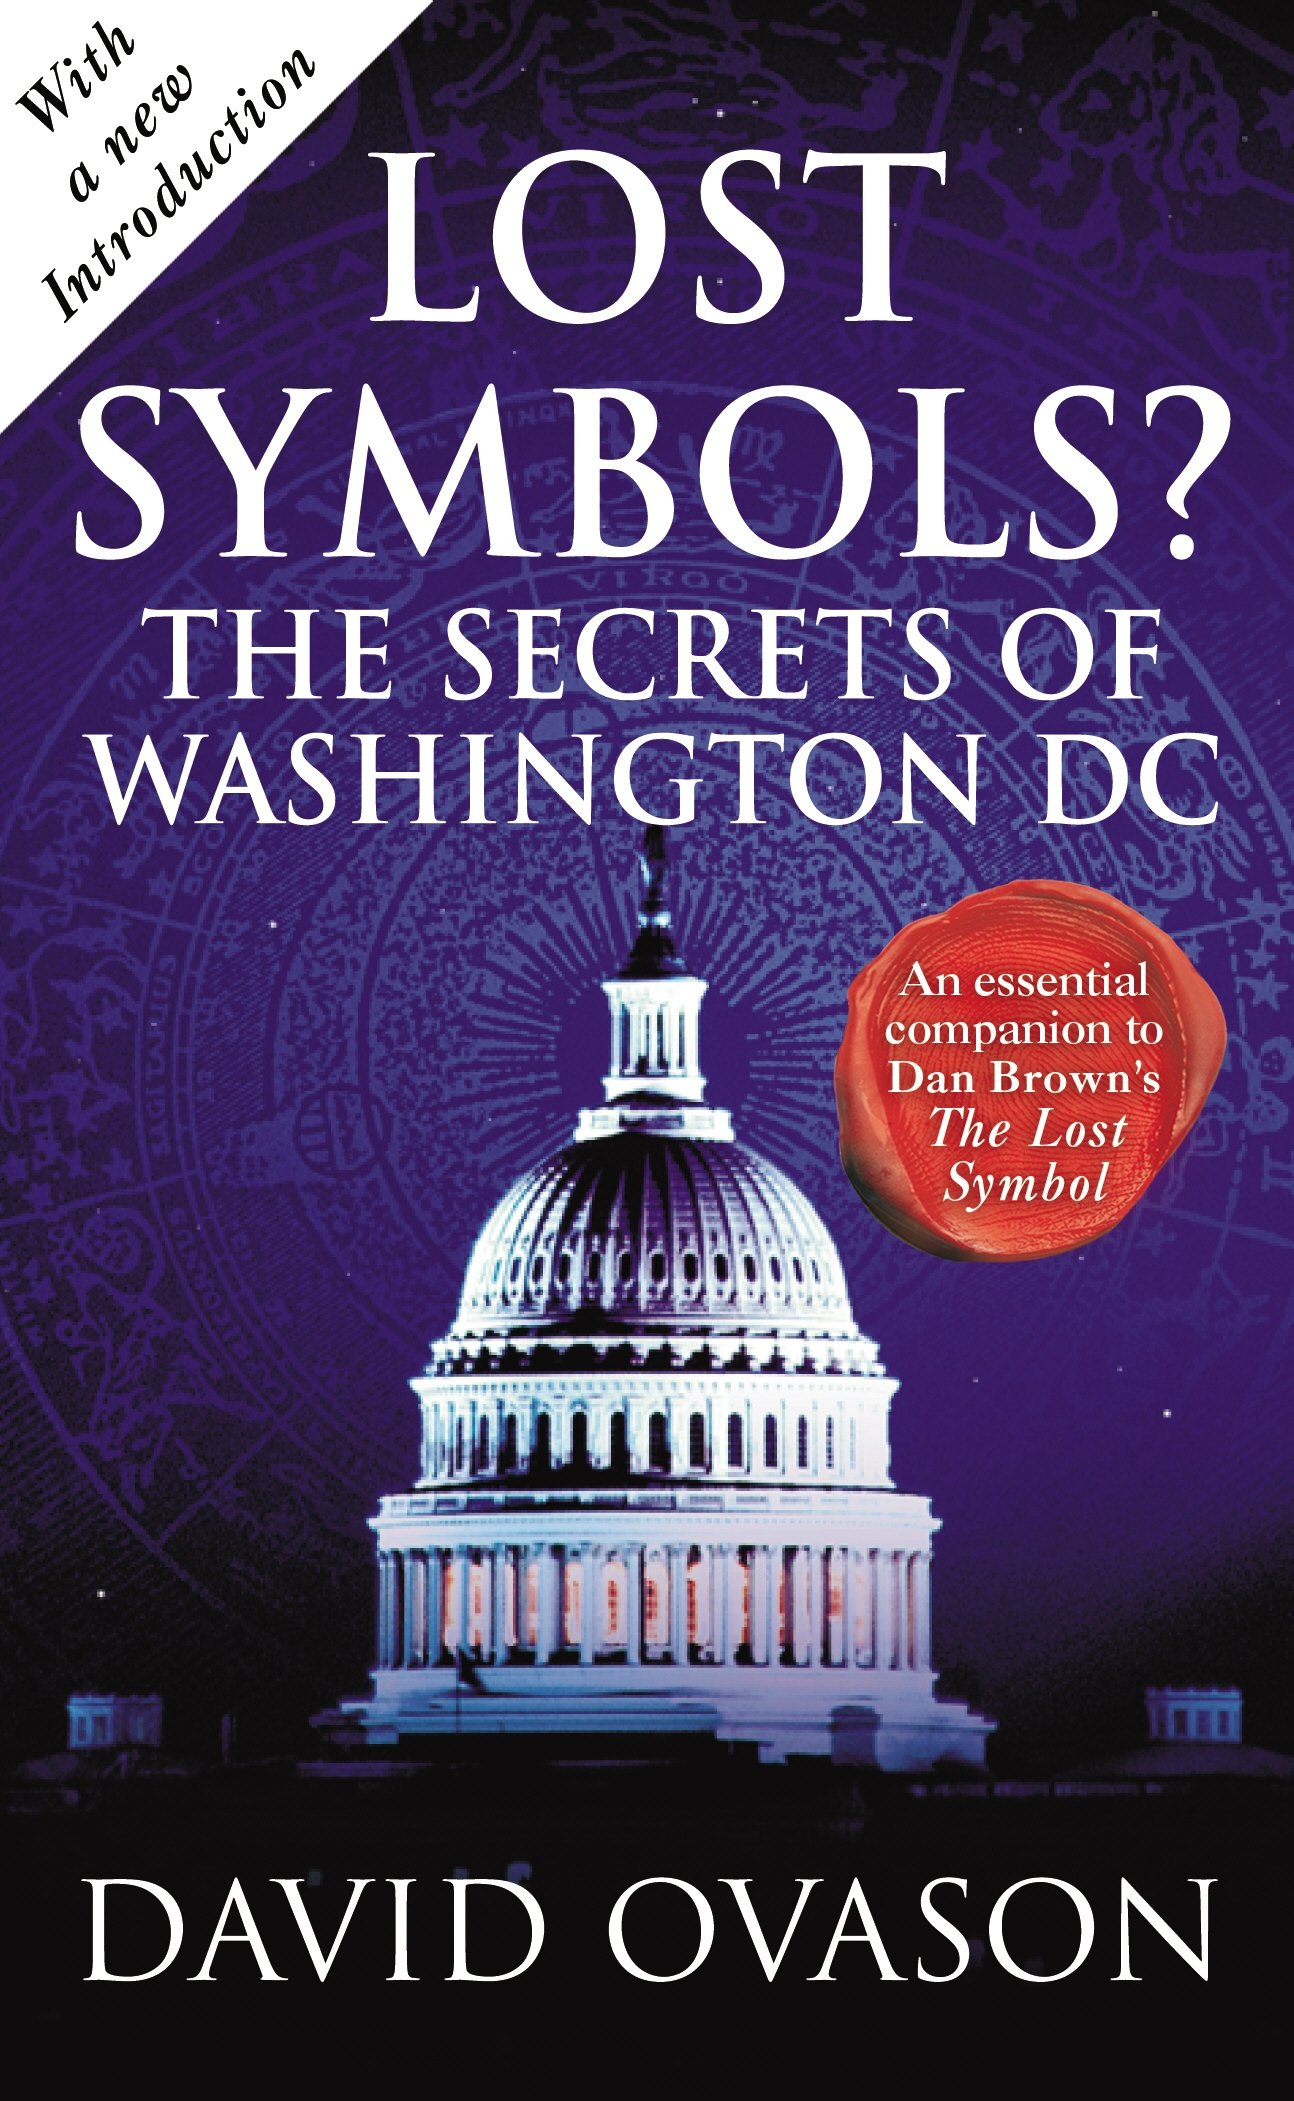 Lost symbols the secrets of washington dc david ovason lost symbols the secrets of washington dc david ovason 9780099548089 amazon books biocorpaavc Images